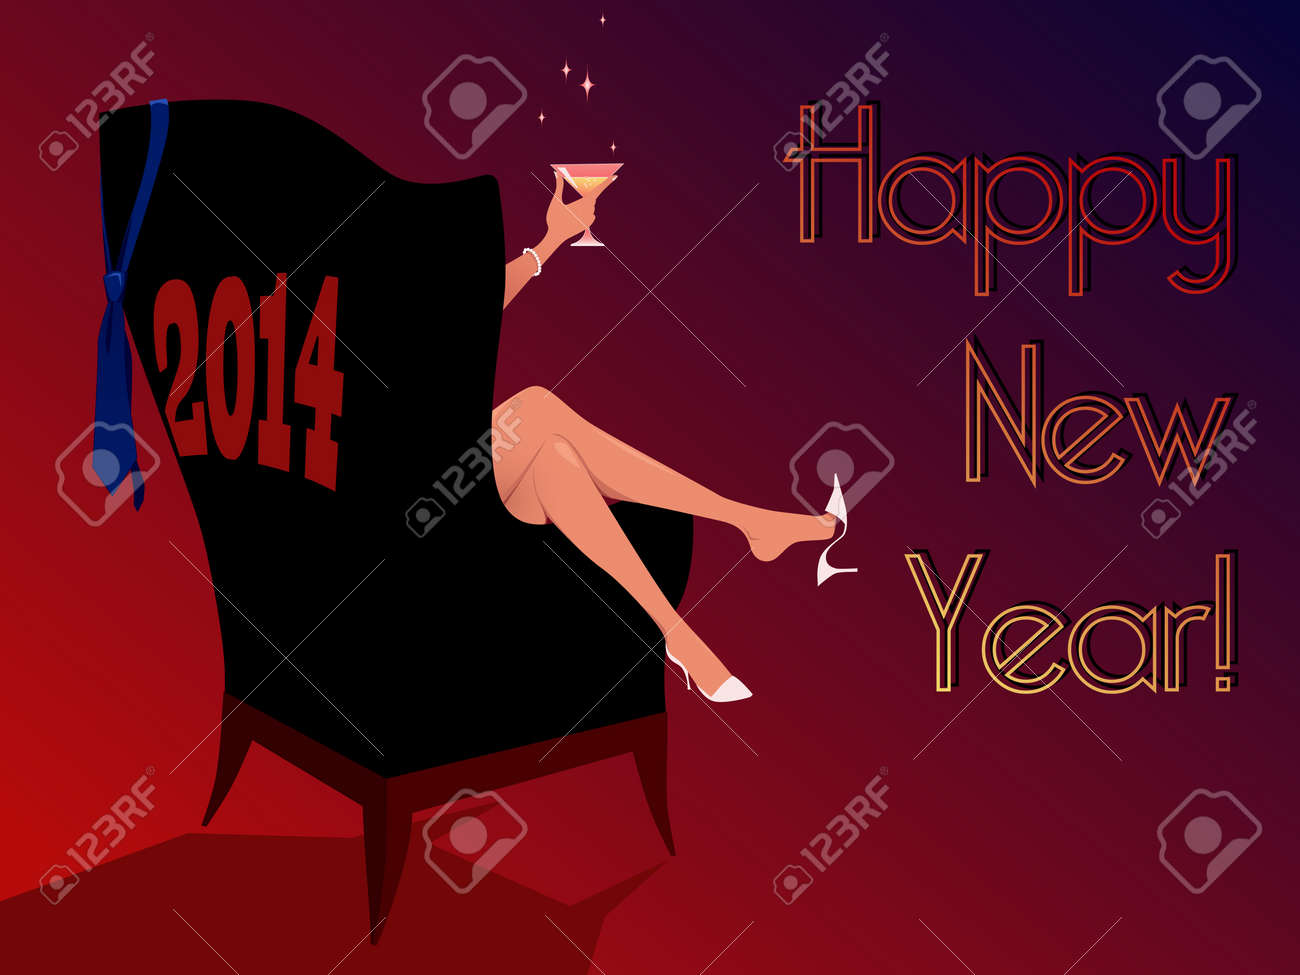 Happy new year 2014 greeting card royalty free cliparts vectors happy new year 2014 greeting card stock vector 23111511 m4hsunfo